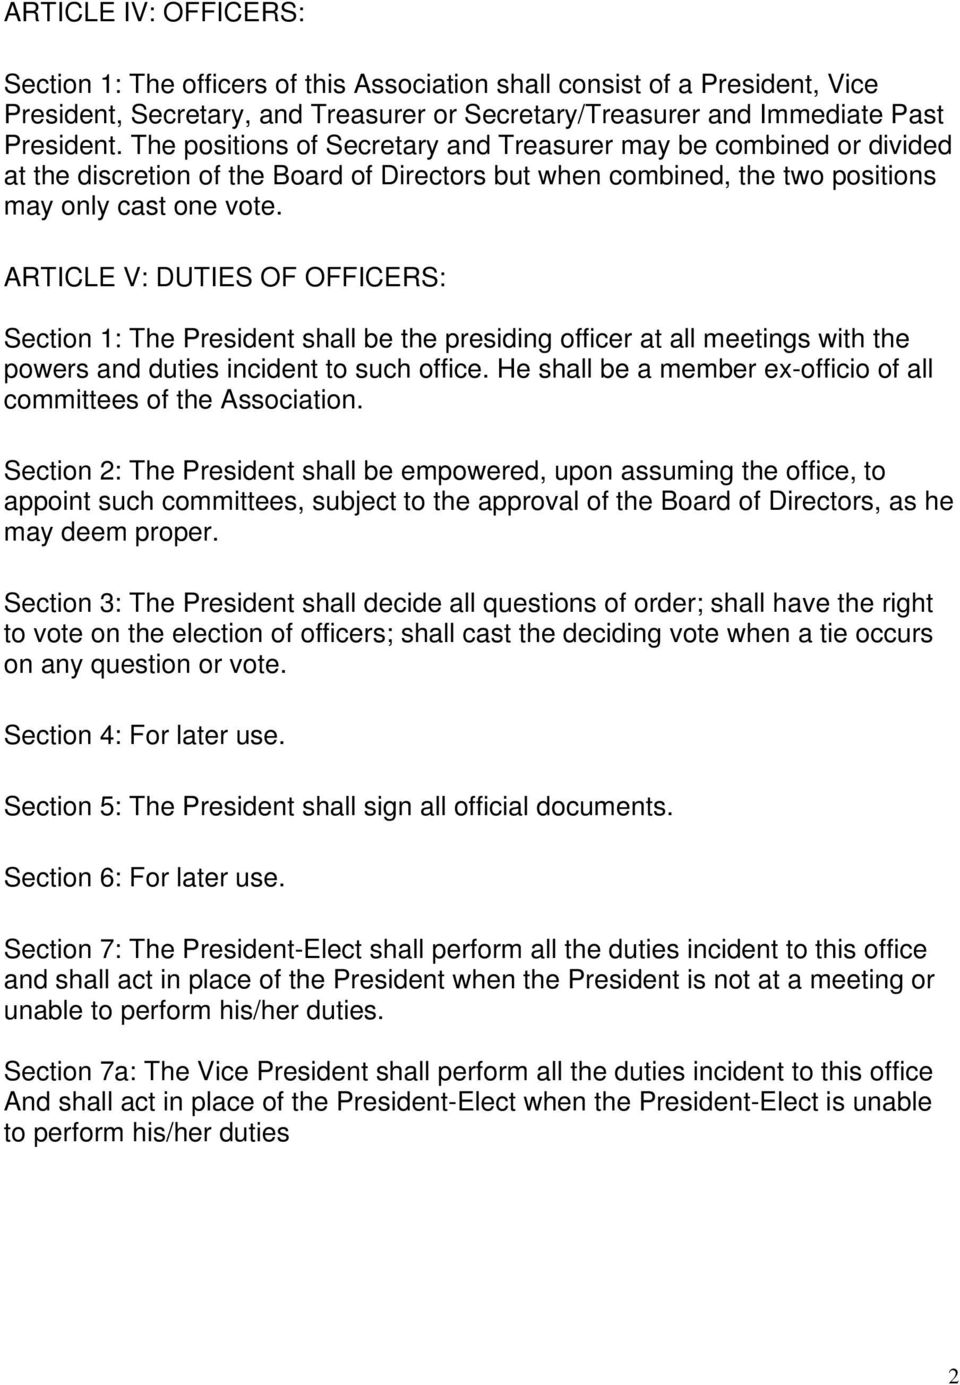 ARTICLE V: DUTIES OF OFFICERS: Section 1: The President shall be the presiding officer at all meetings with the powers and duties incident to such office.